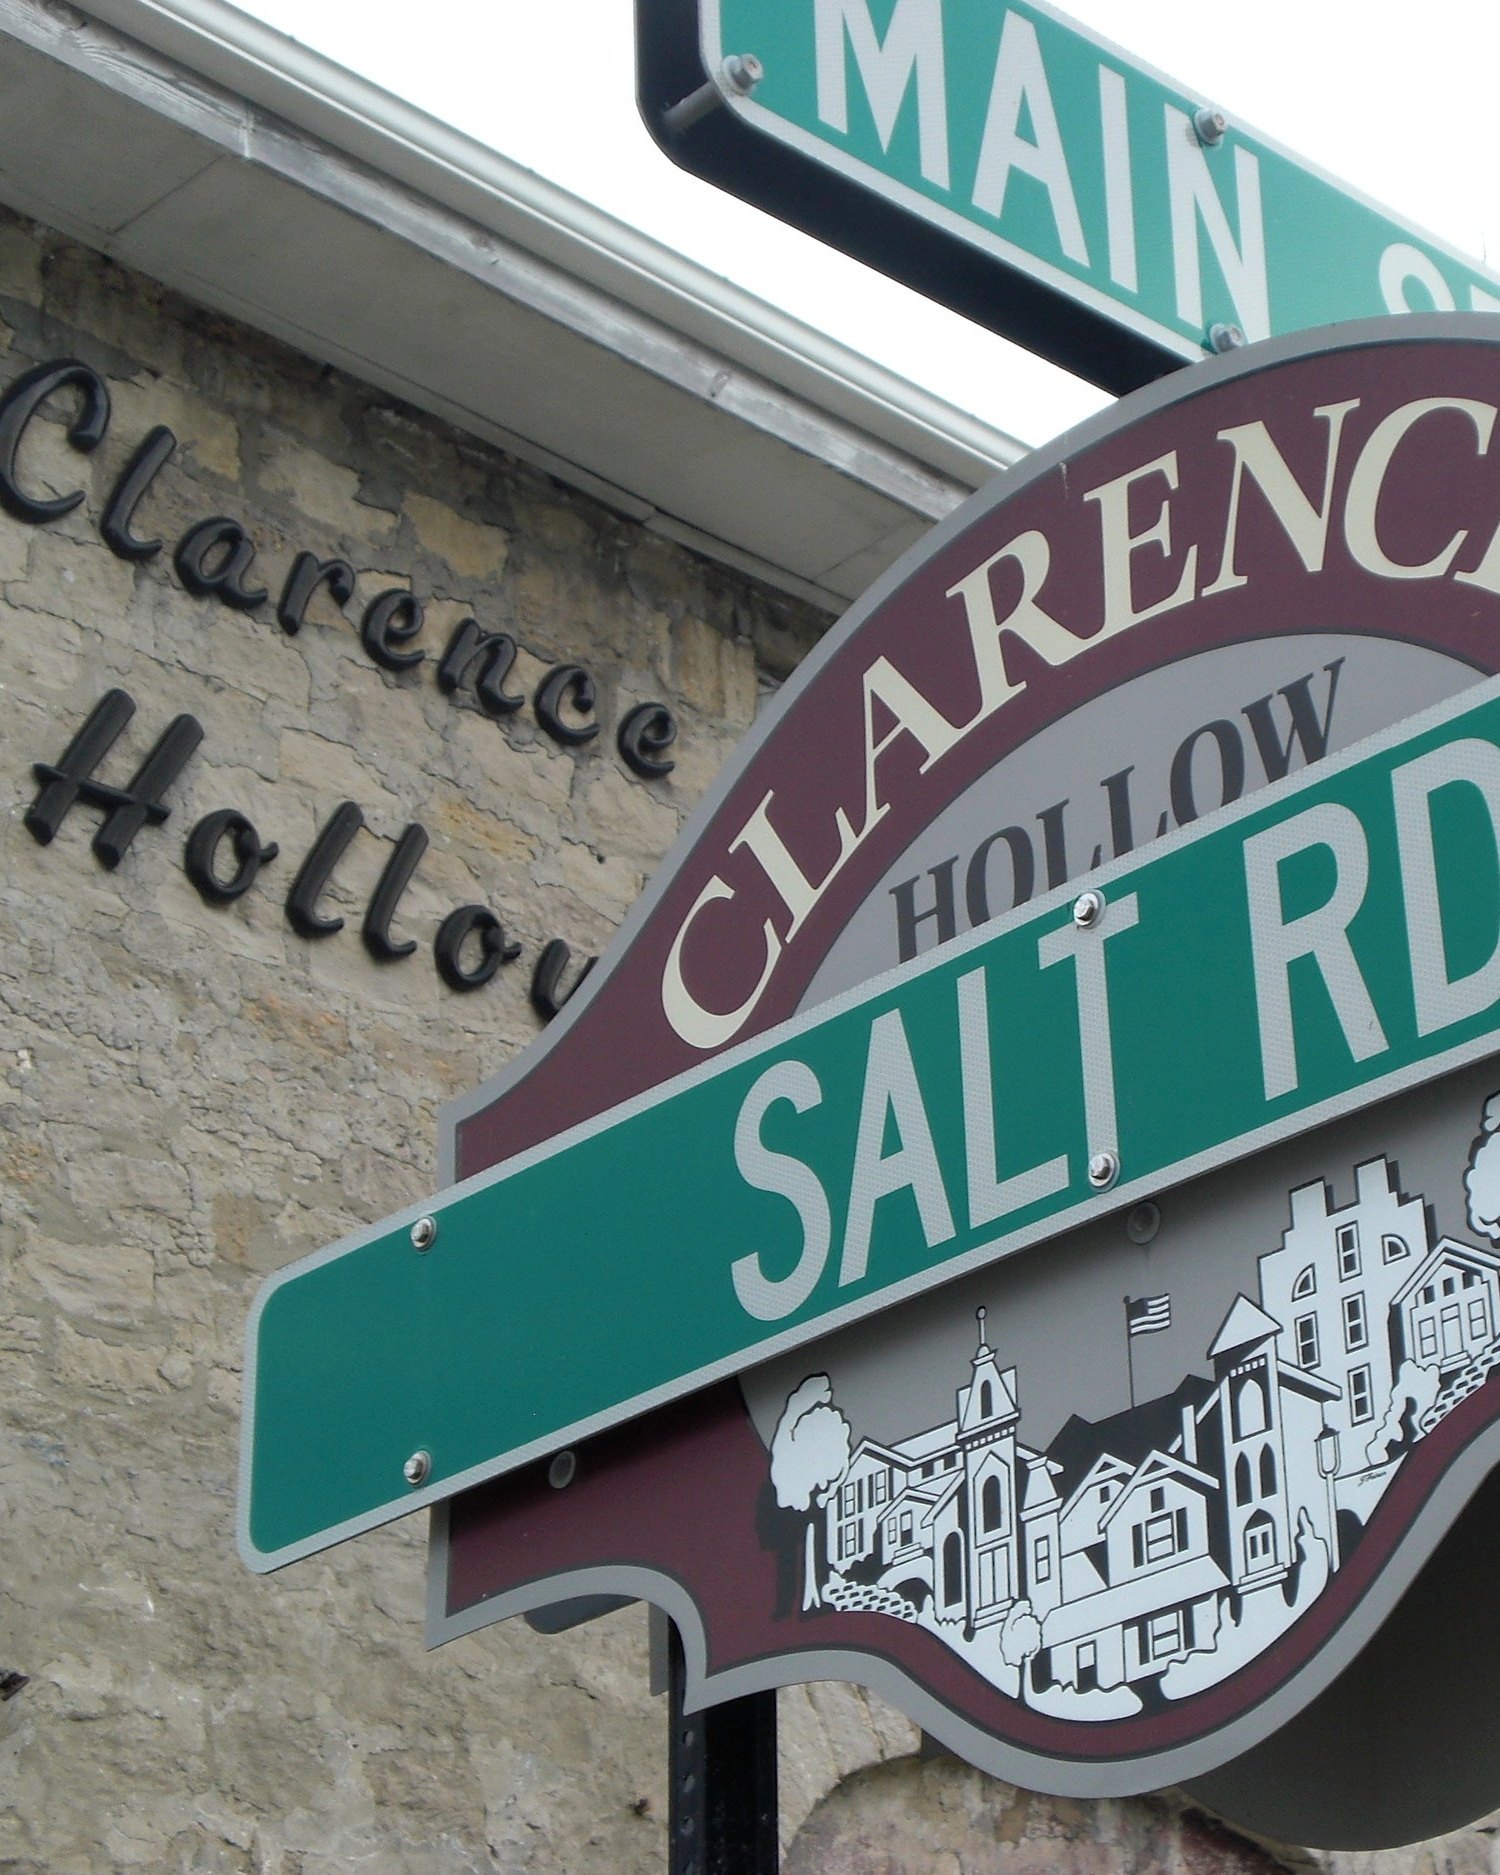 Screenprinted signage for Clarence Hollow, Clarence, NY